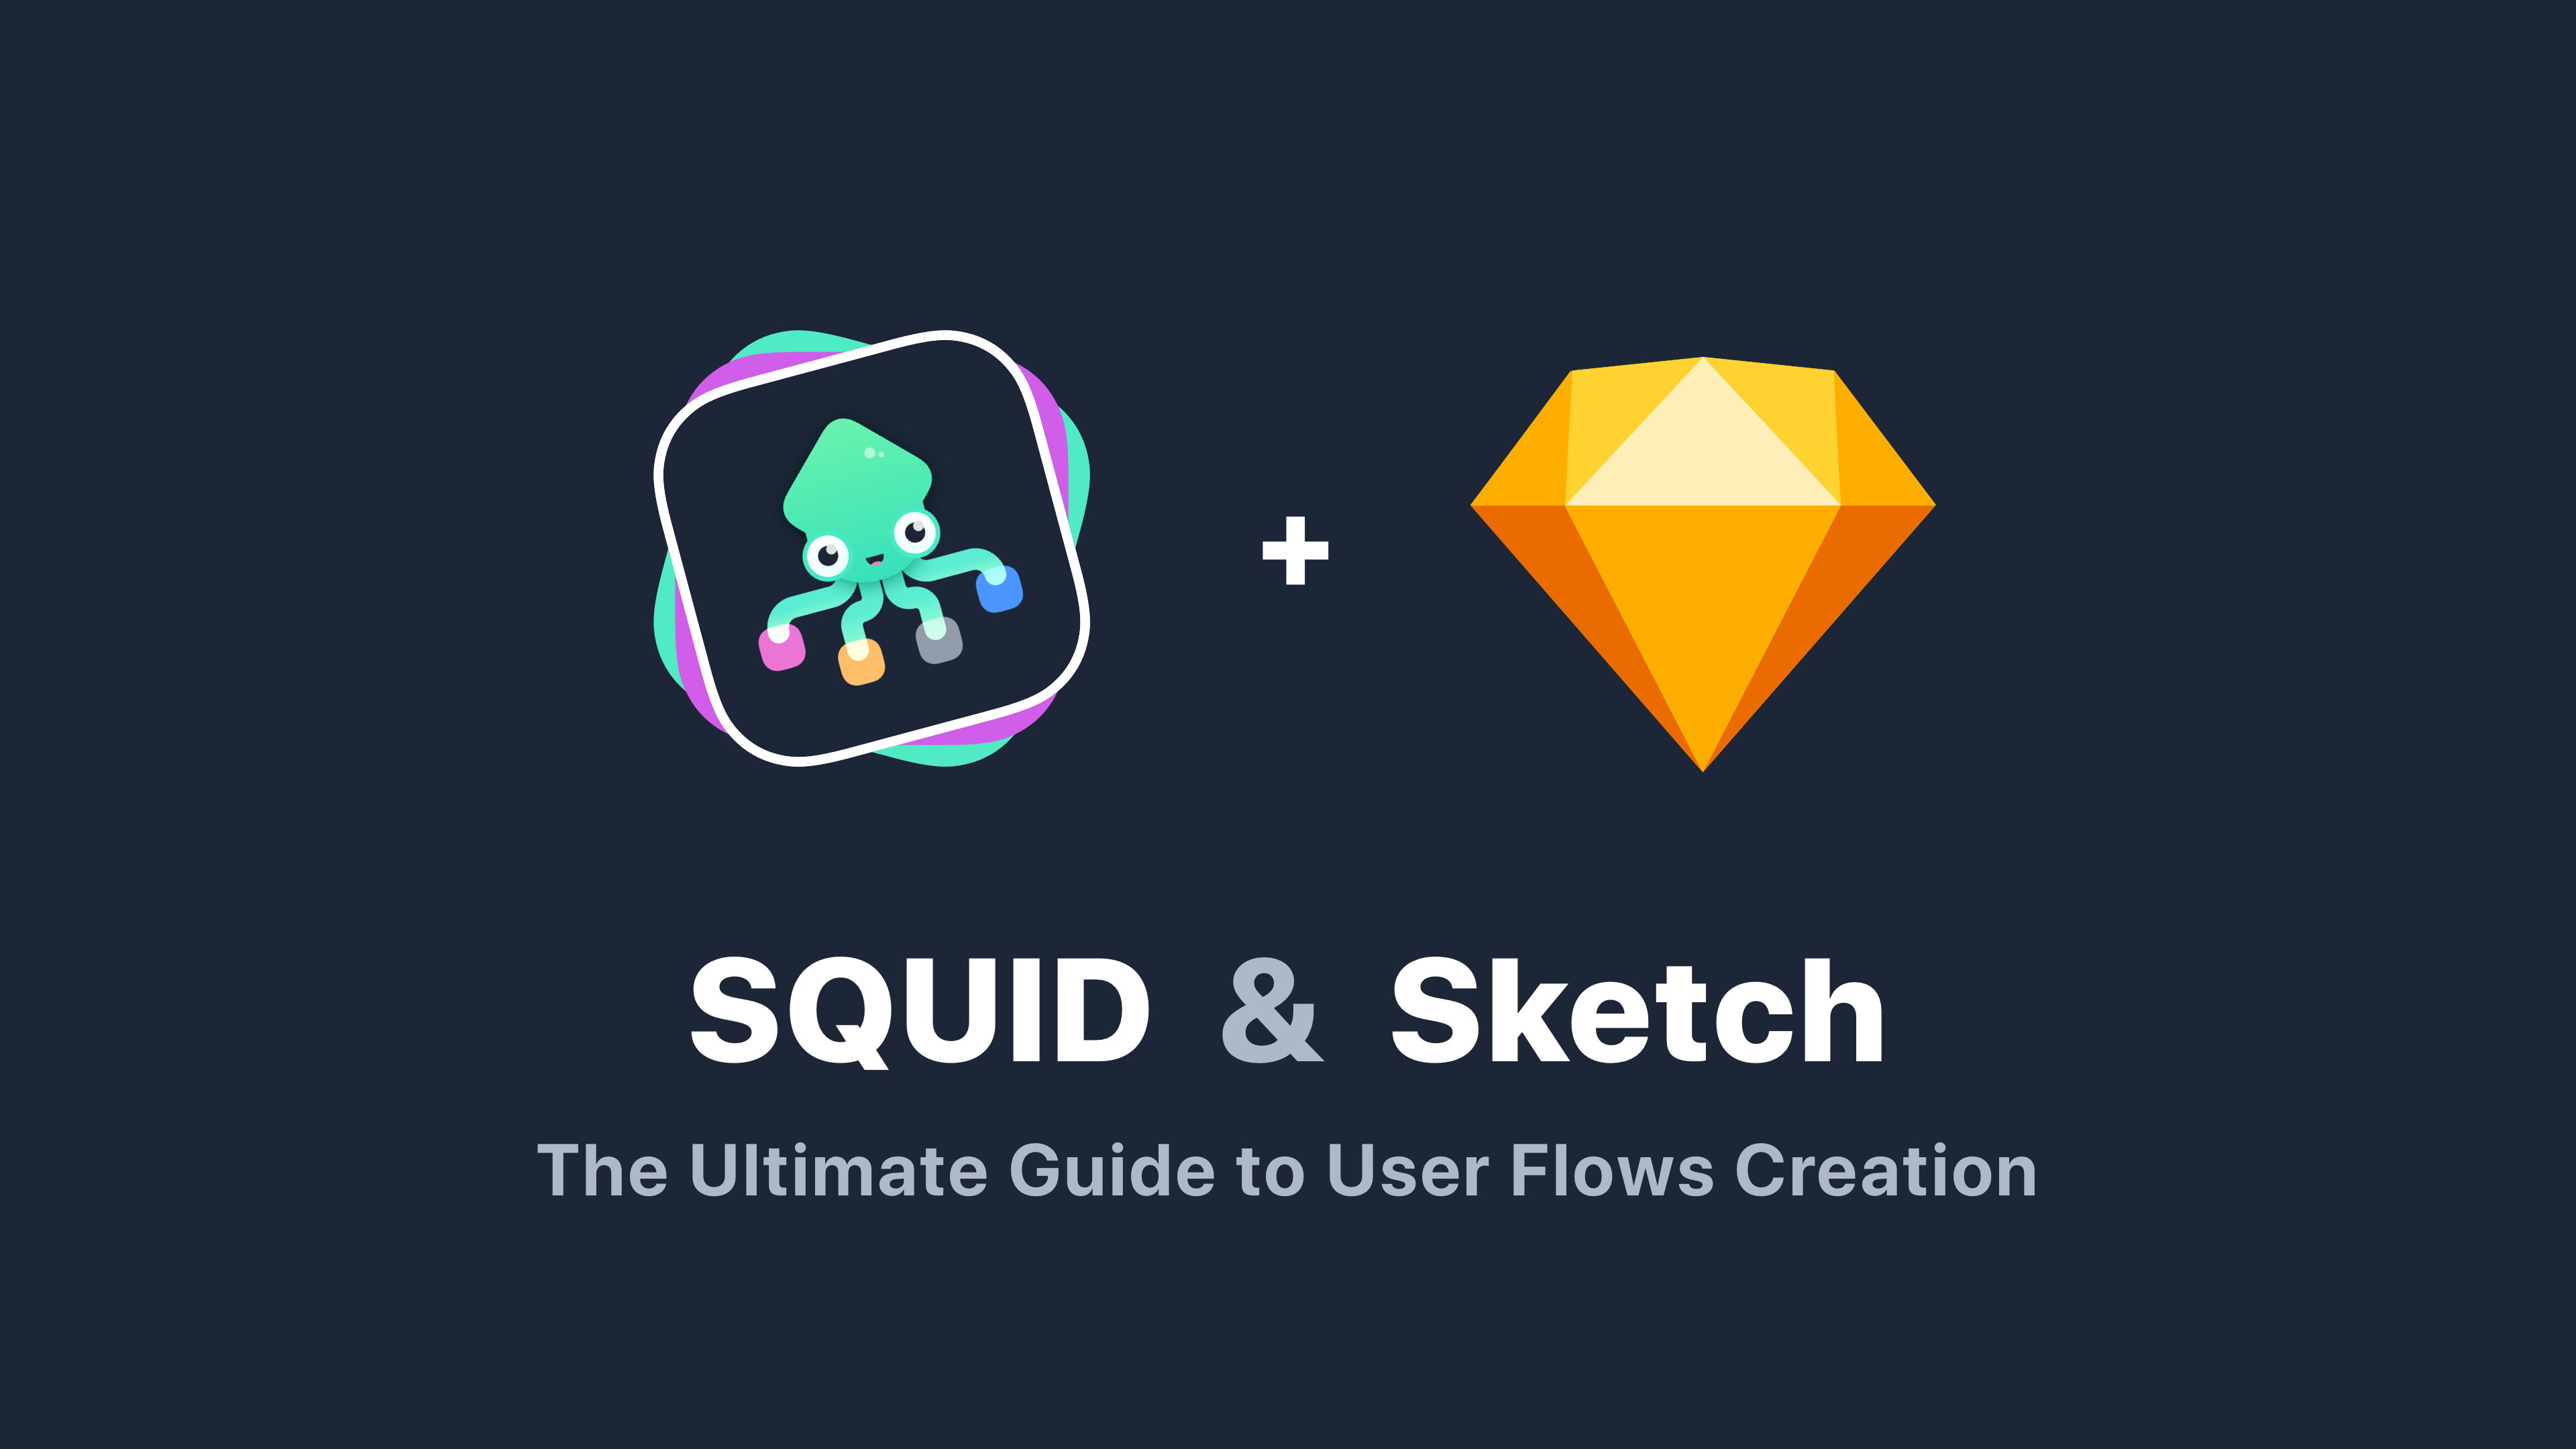 SQUID & Sketch — The Ultimate Guide to User Flows Creation